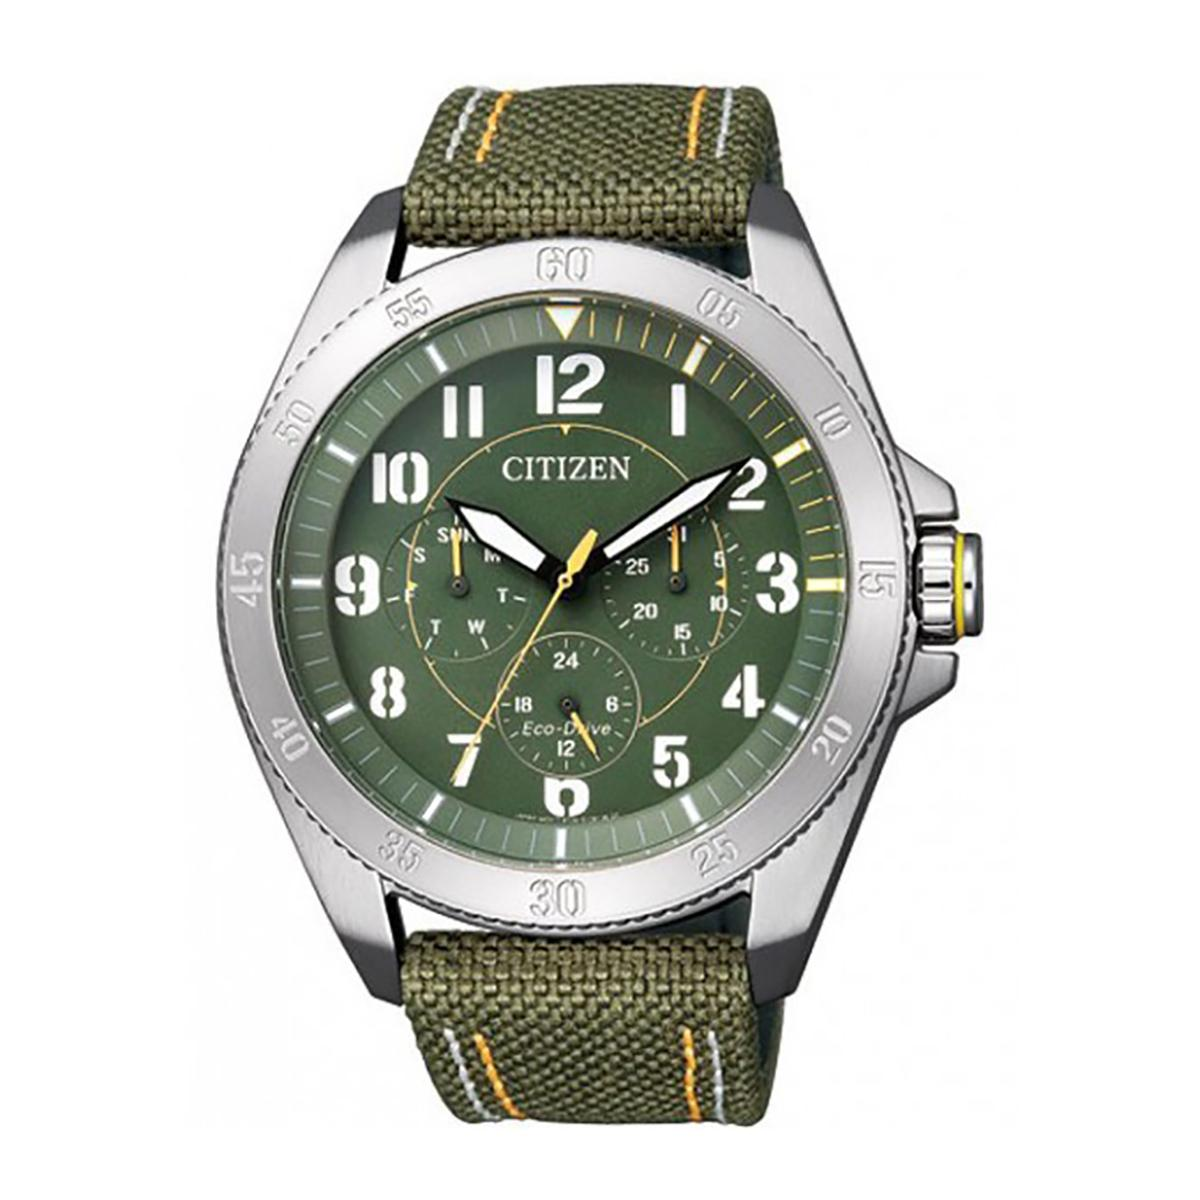 Compare Citizen Citizen Eco Drive Military Green Stainless Steel Case Nylon Strap Mens Bu2030 09W